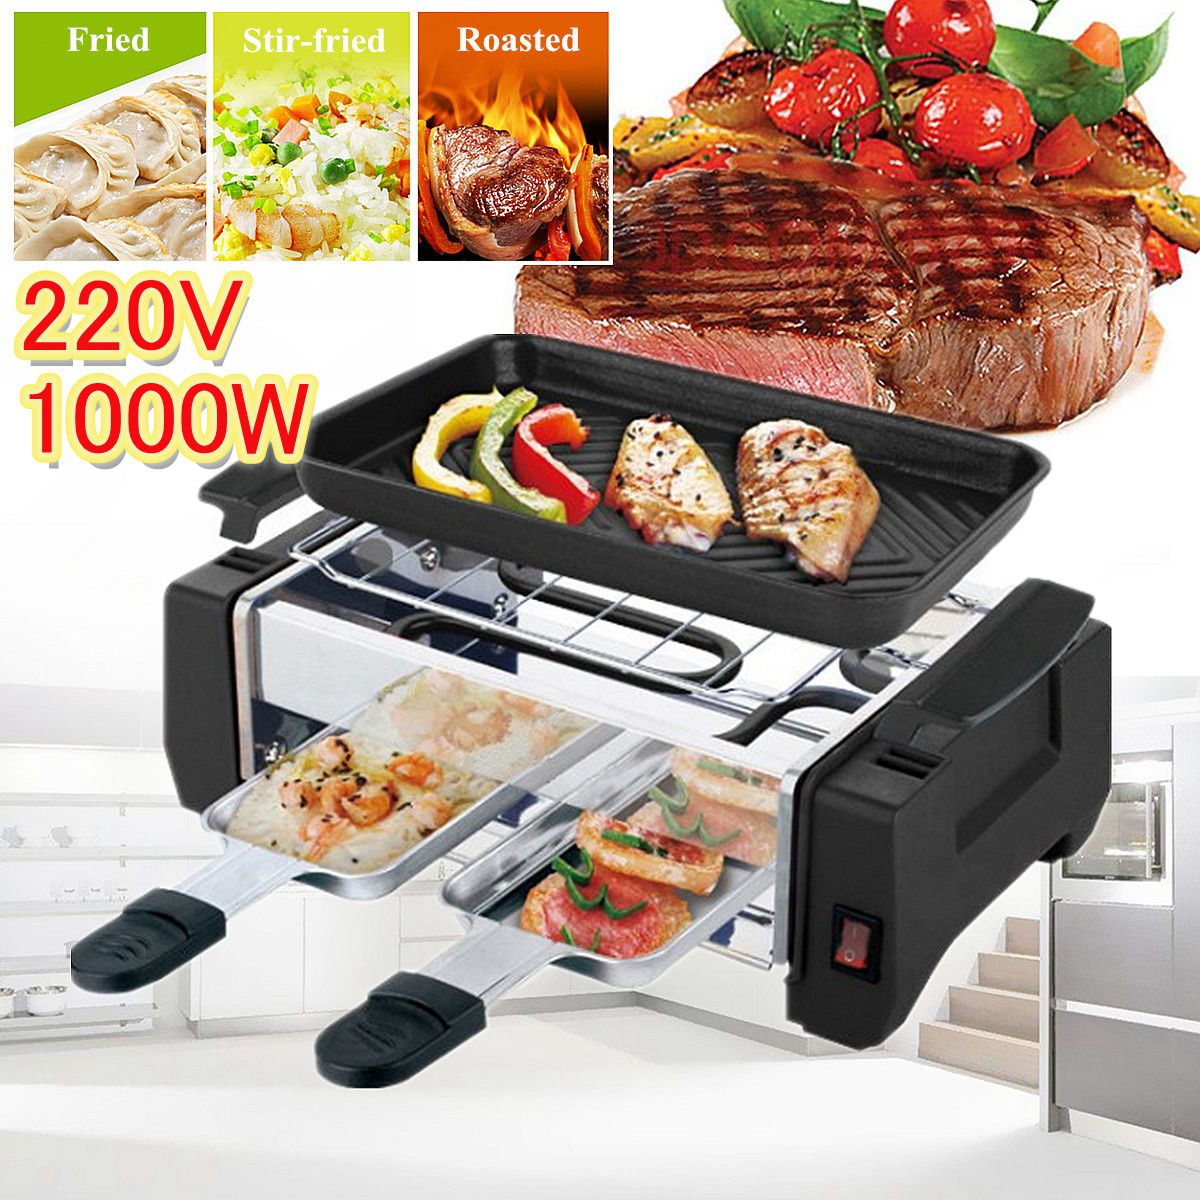 1600w electric shabu roasted pot multifunctional electric pan grill bbq grill raclette grill electric hotpot with grill pan 1000W Non Stick Electric BBQ Grill Kitchen Barbecue Machine Grilled Meat Pan Contact Grill 2 Type Frying Pan for Home Store Cook